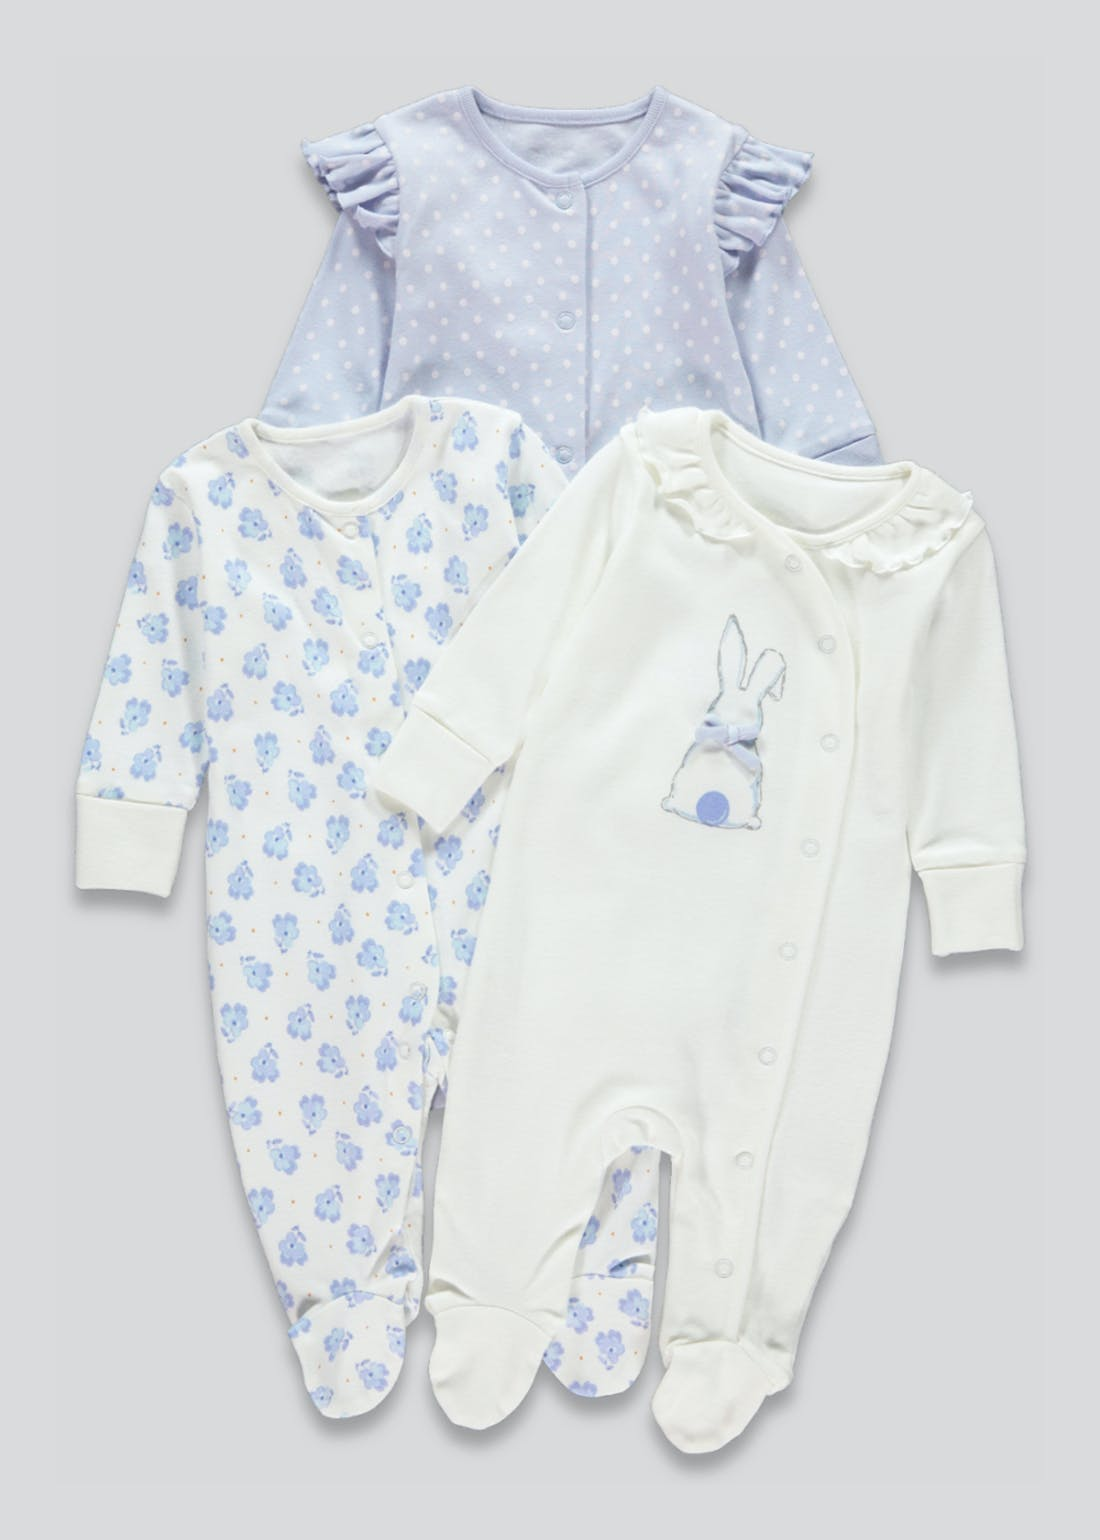 Girls 3 Pack Bunny Baby Grows (Tiny Baby-18mths)